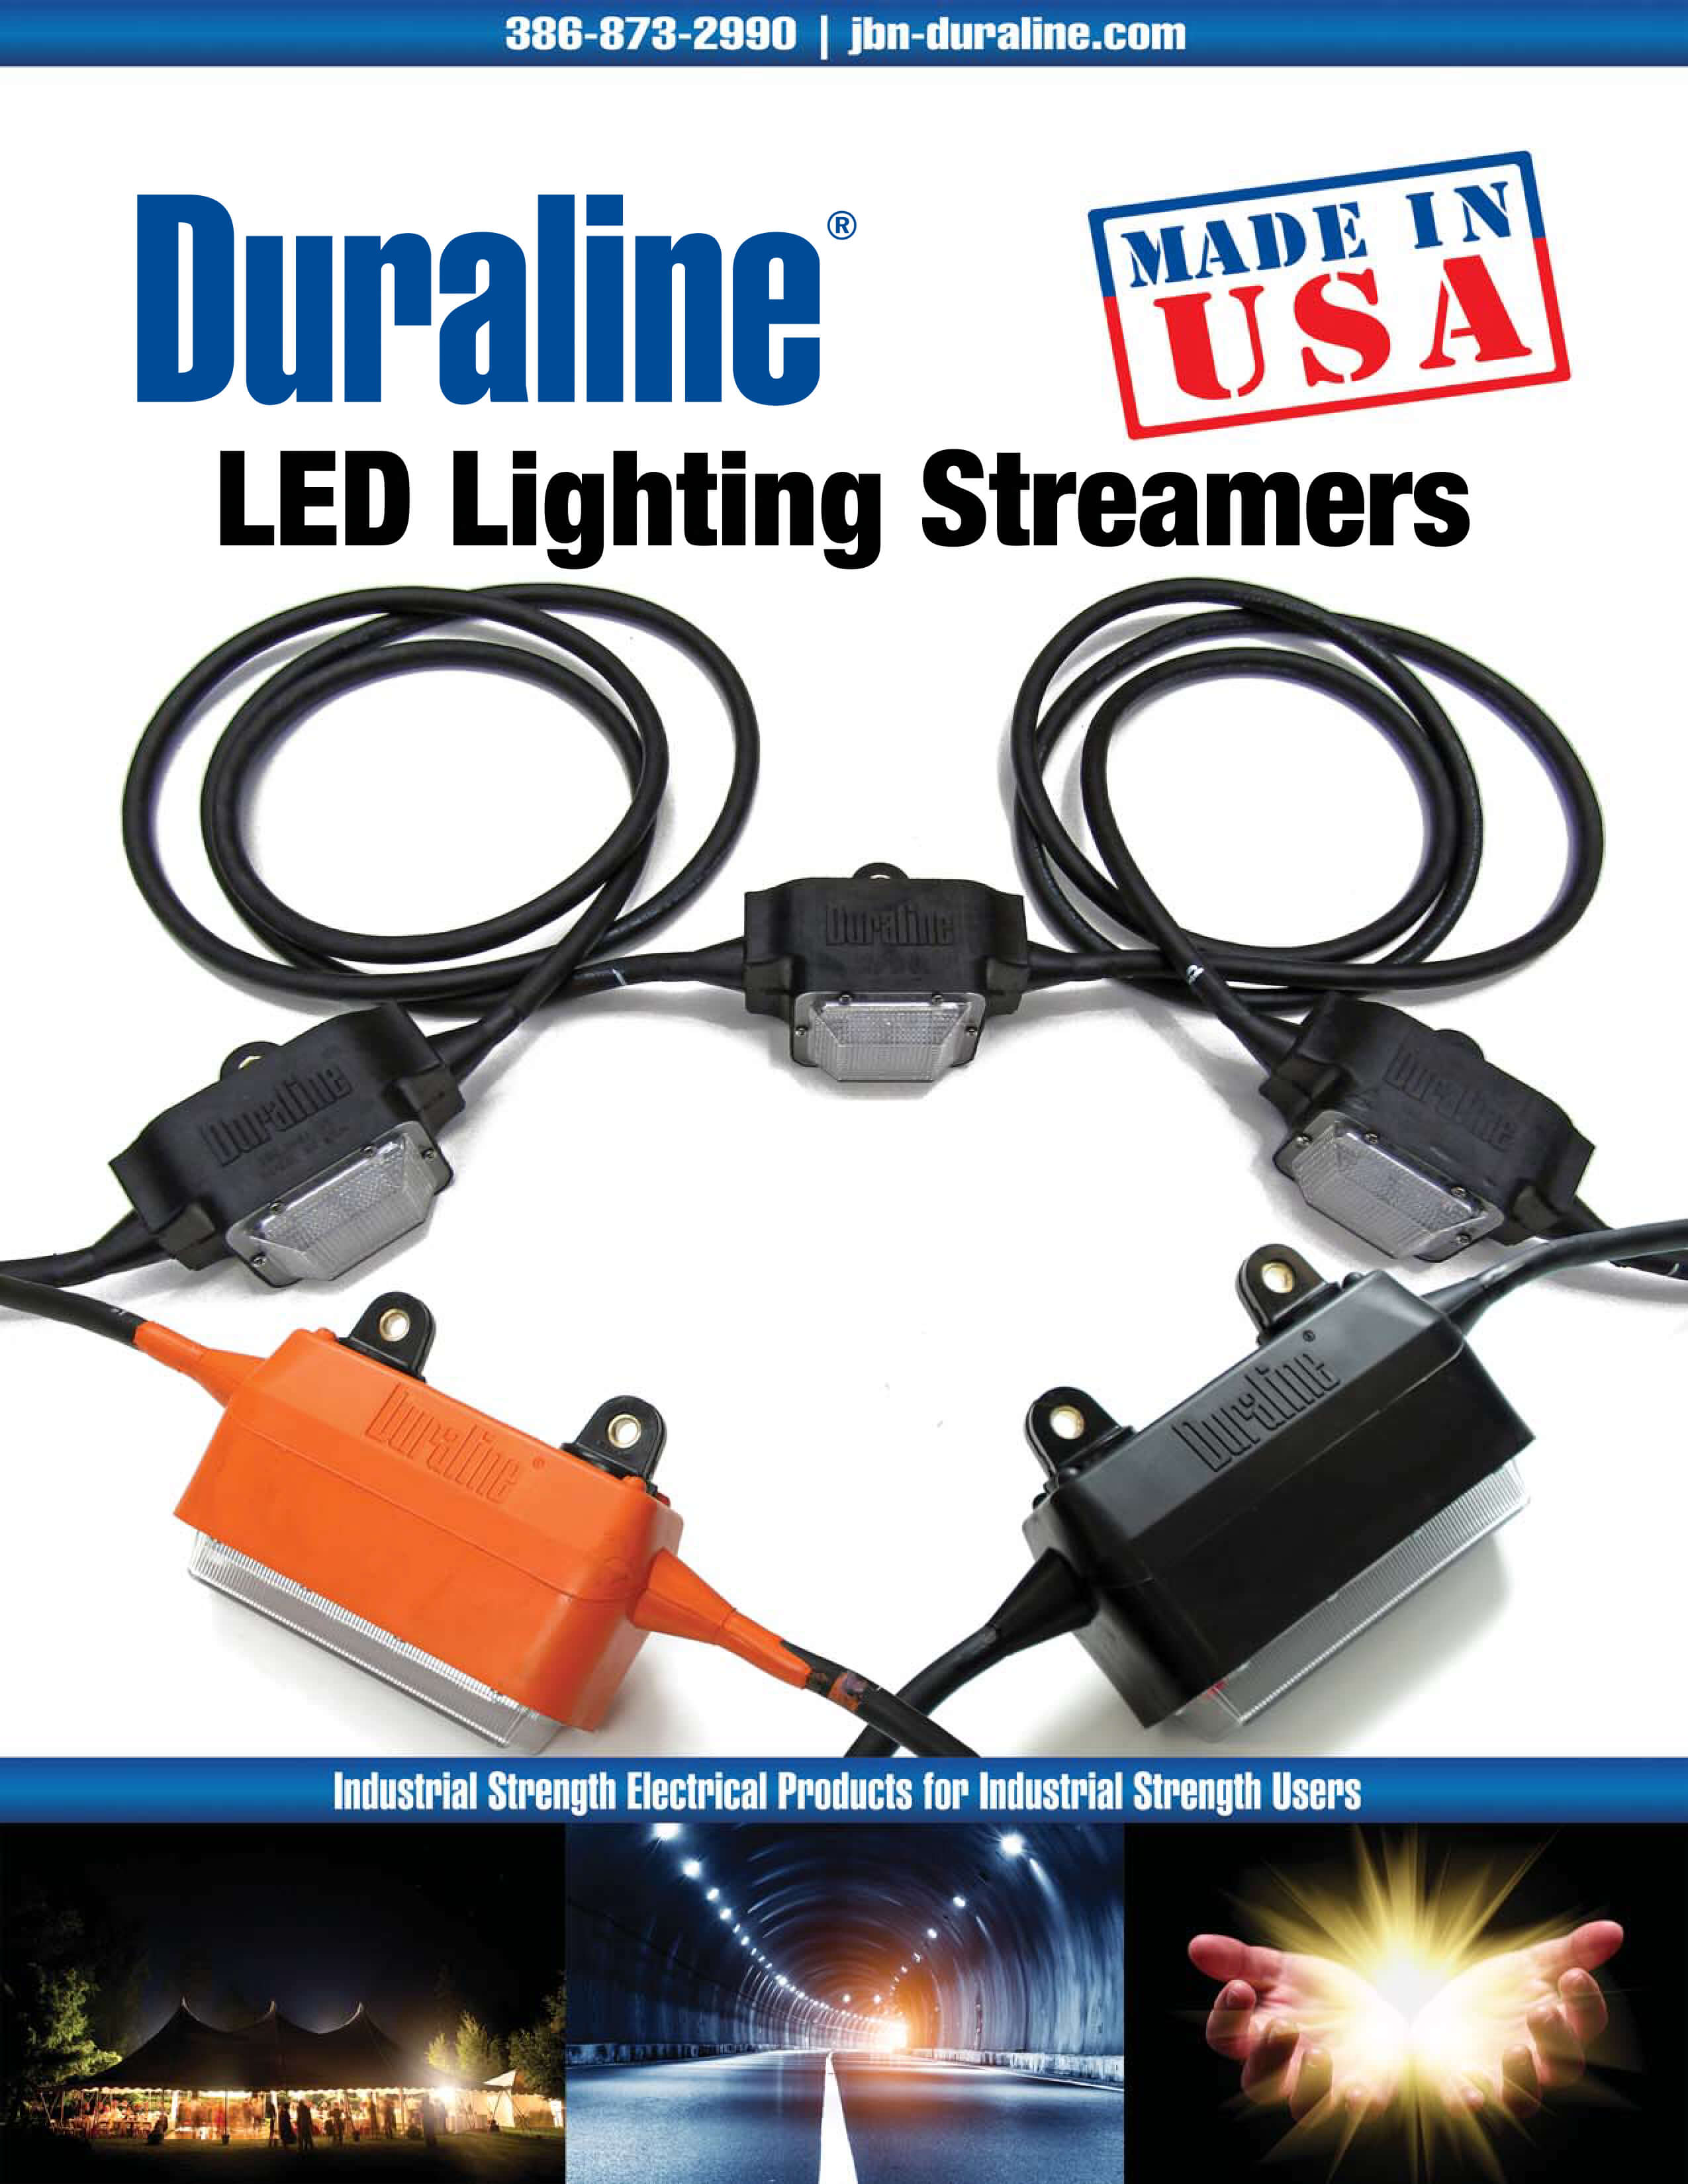 The Duraline Mighty LED Light Streamer Offers High-Intensity Light To Illuminate a Vast Area